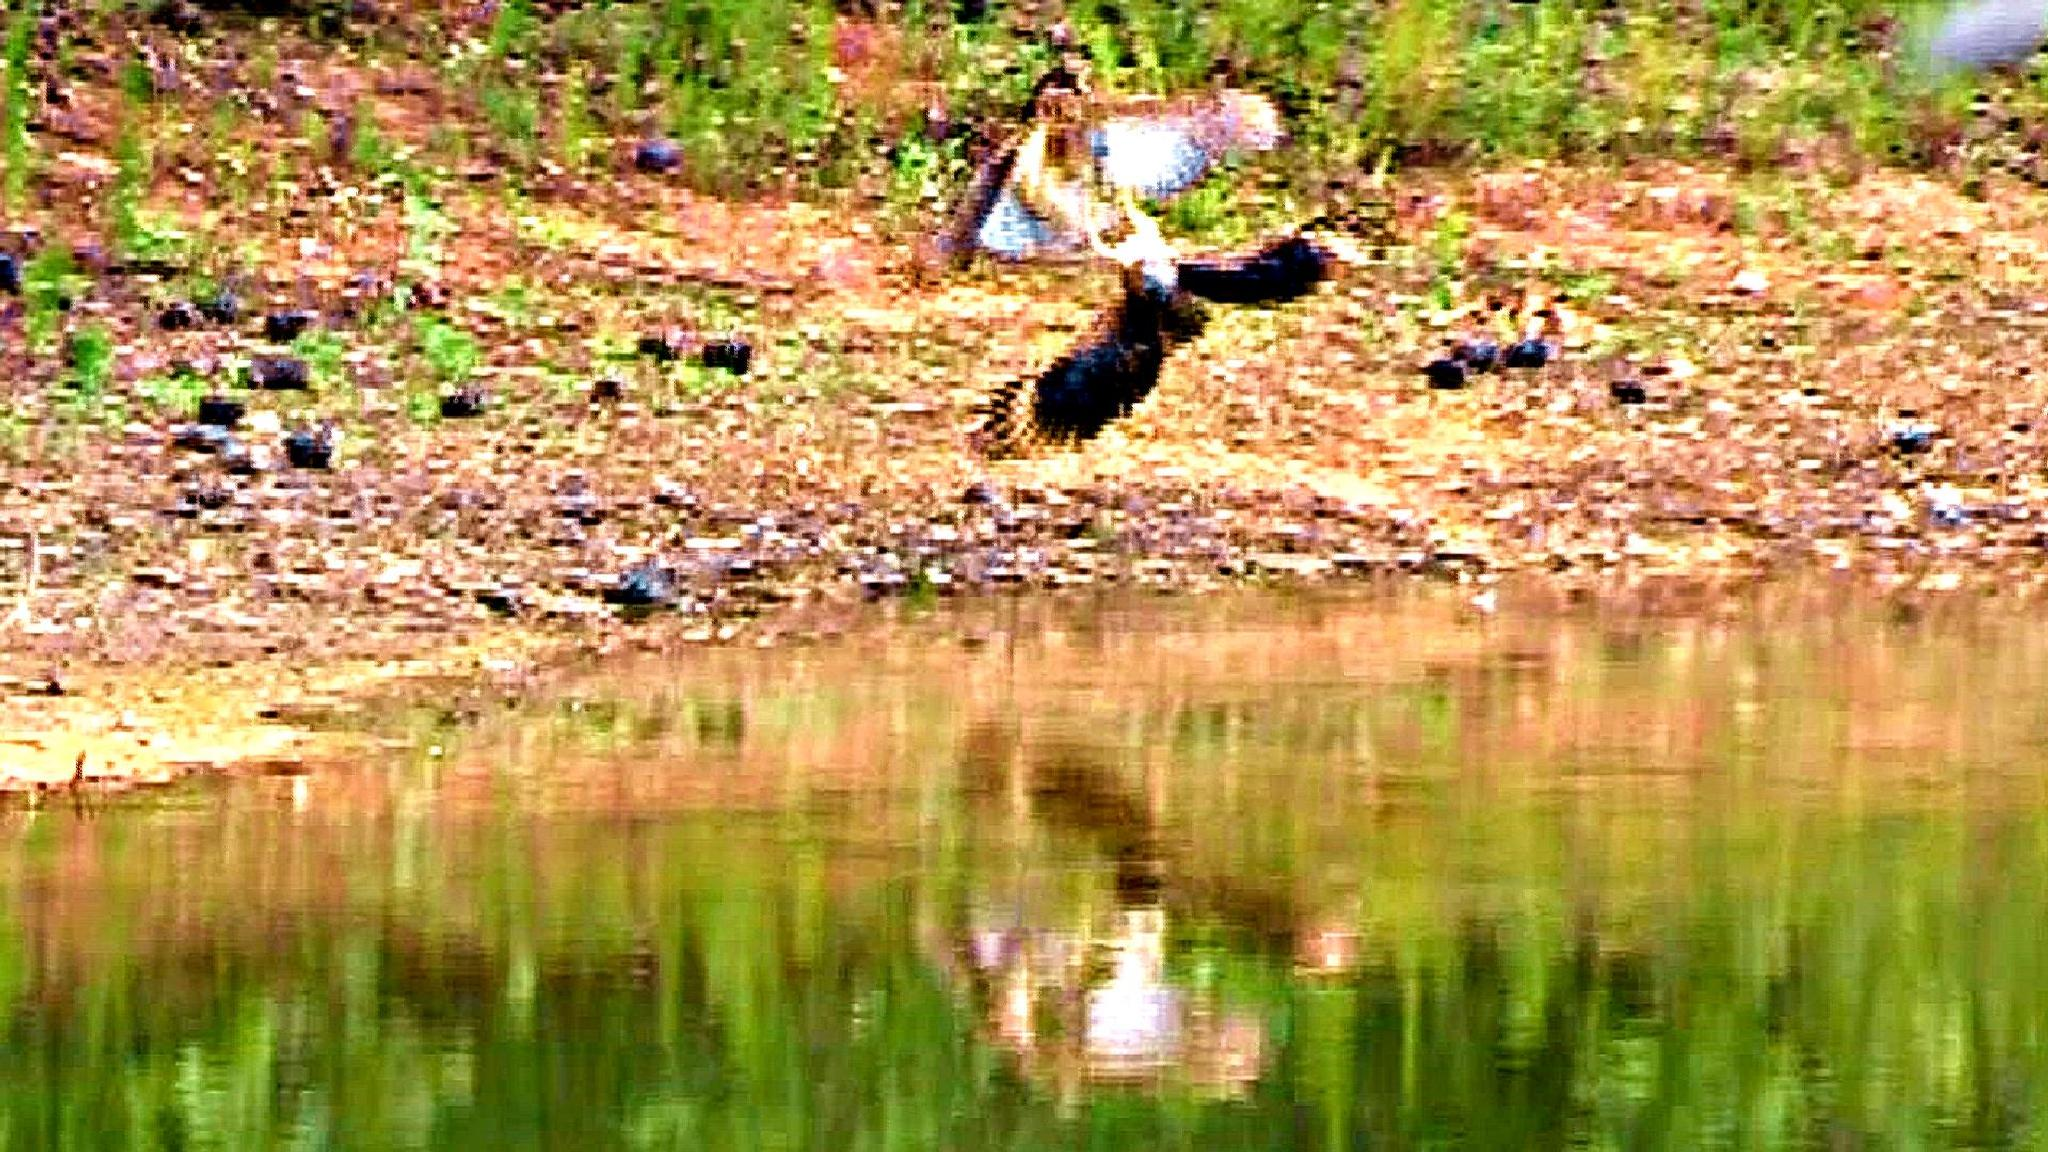 Big HAWKS fighting, hunting and bathing by abomani